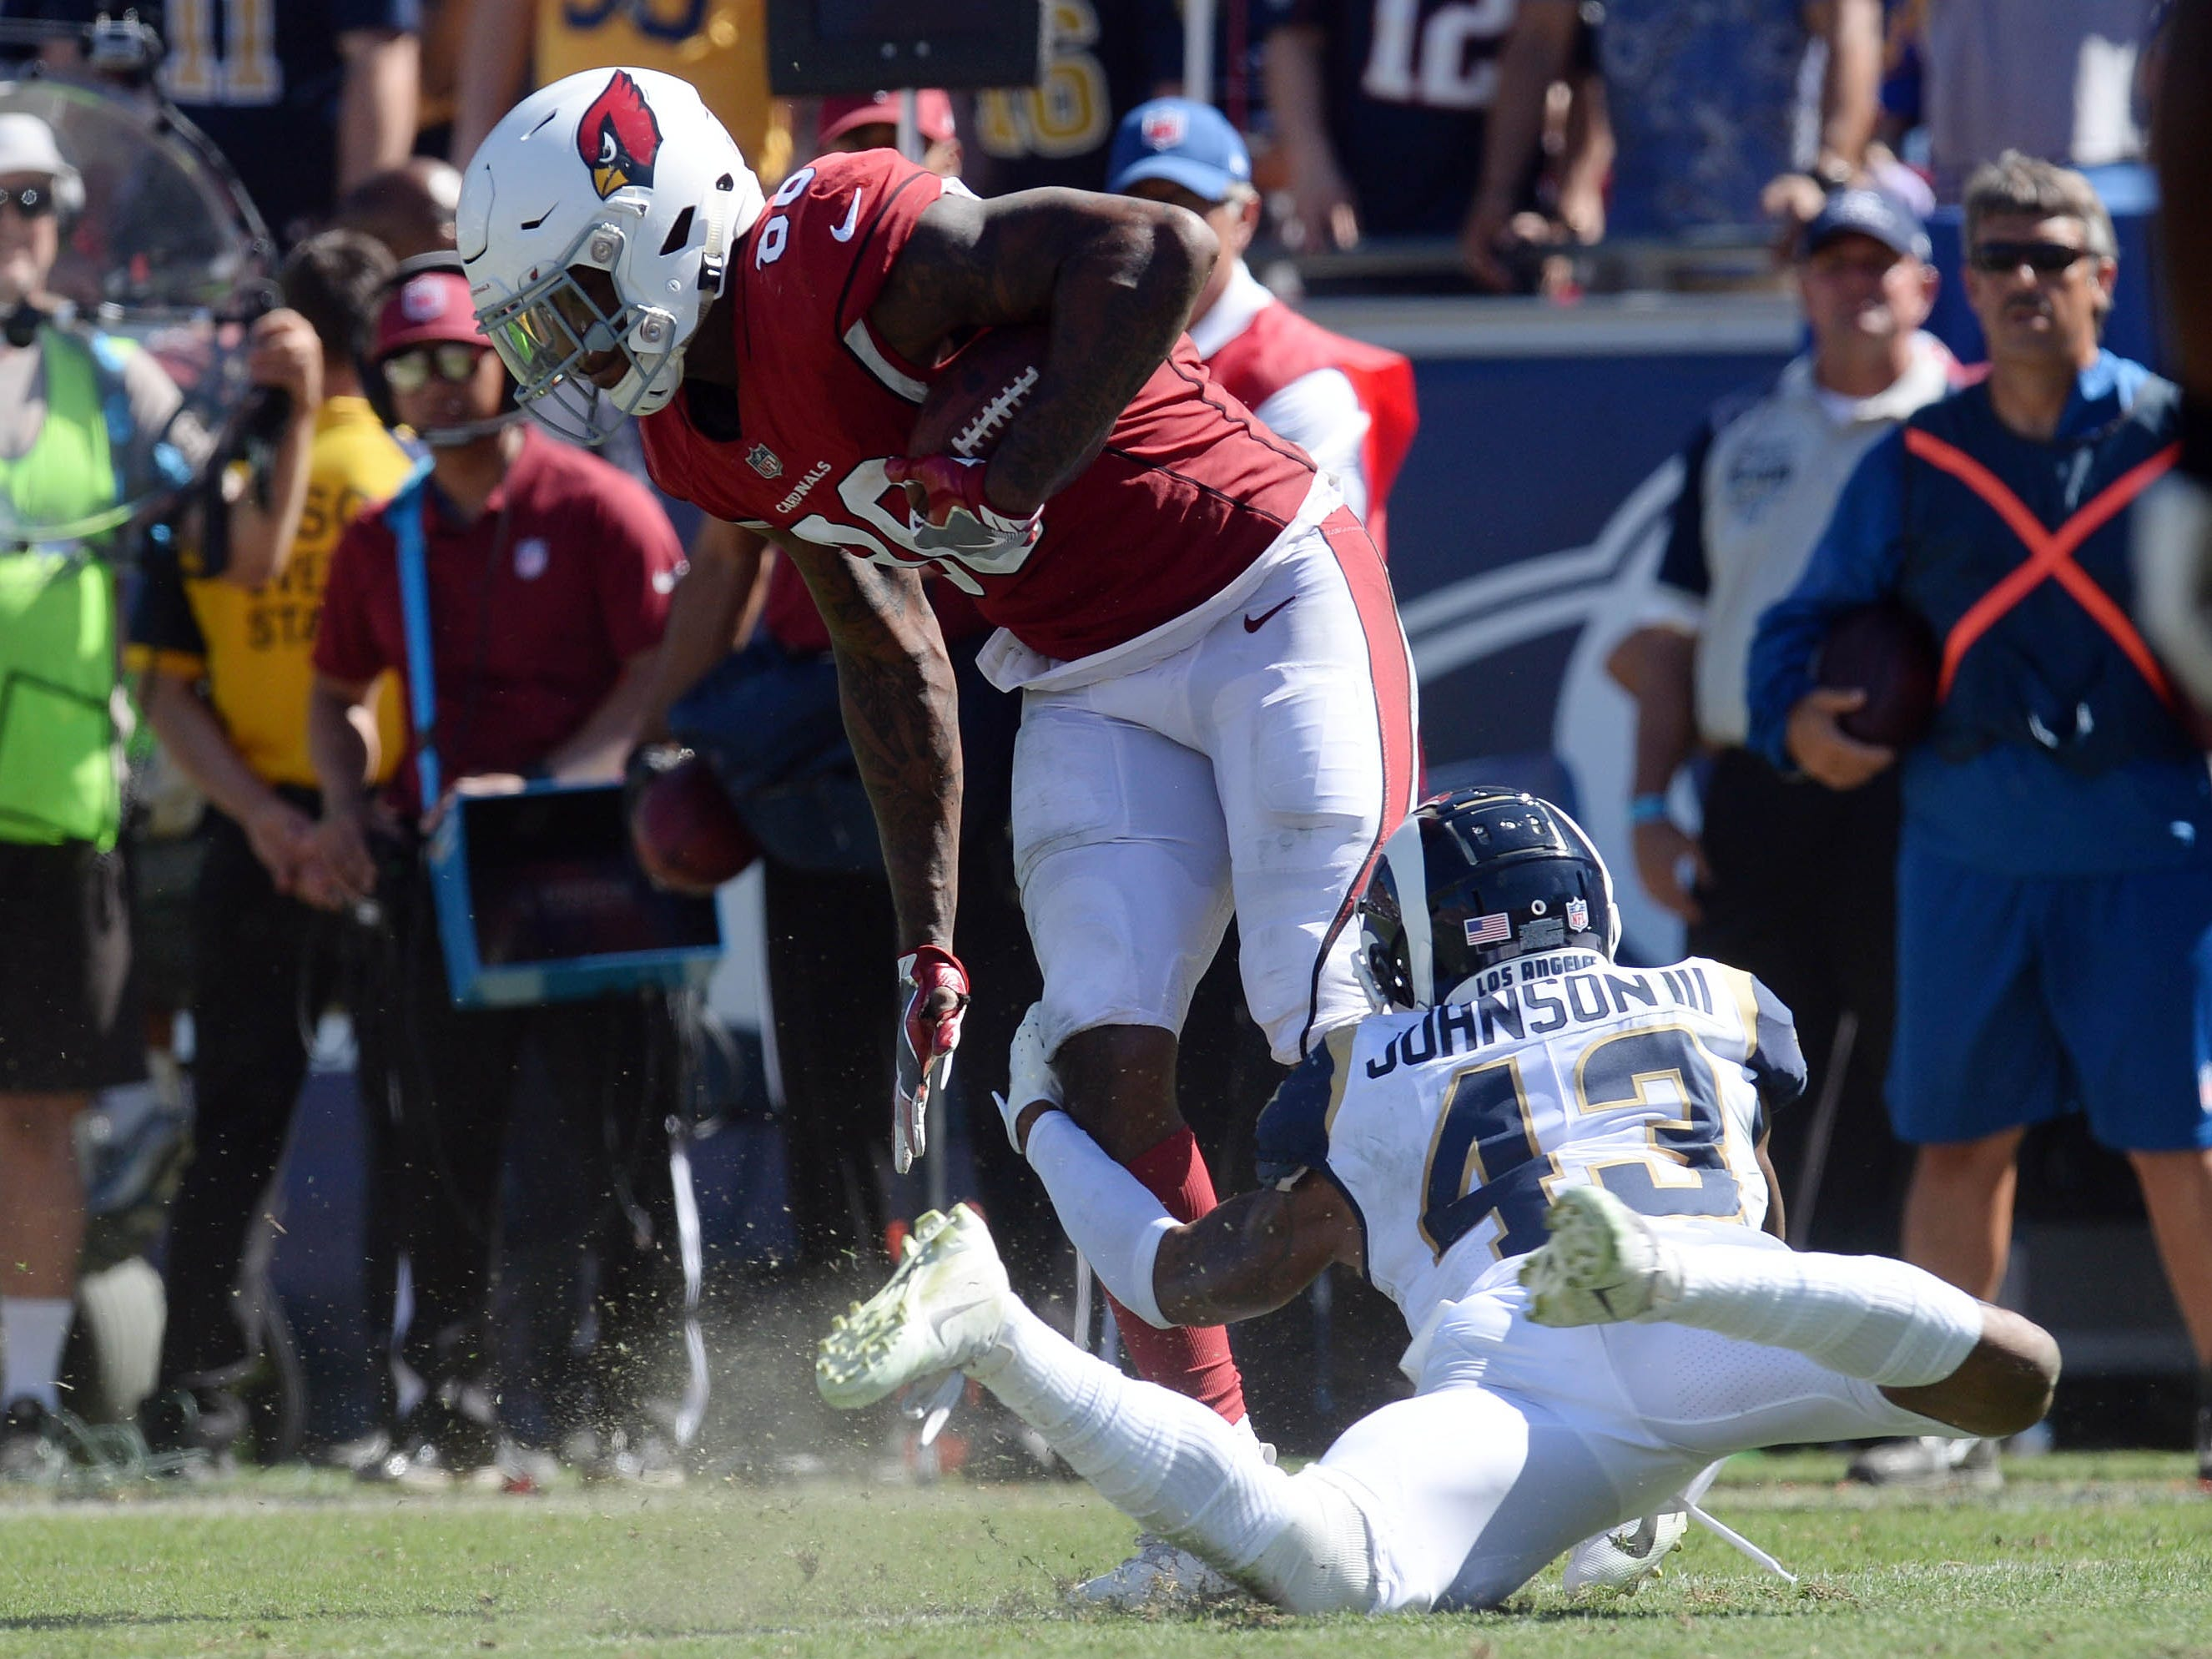 September 16, 2018; Los Angeles, CA, USA; Arizona Cardinals tight end Ricky Seals-Jones (86) is brought down by Los Angeles Rams defensive back John Johnson (43) during the second half at the Los Angeles Memorial Coliseum. Mandatory Credit: Gary A. Vasquez-USA TODAY Sports